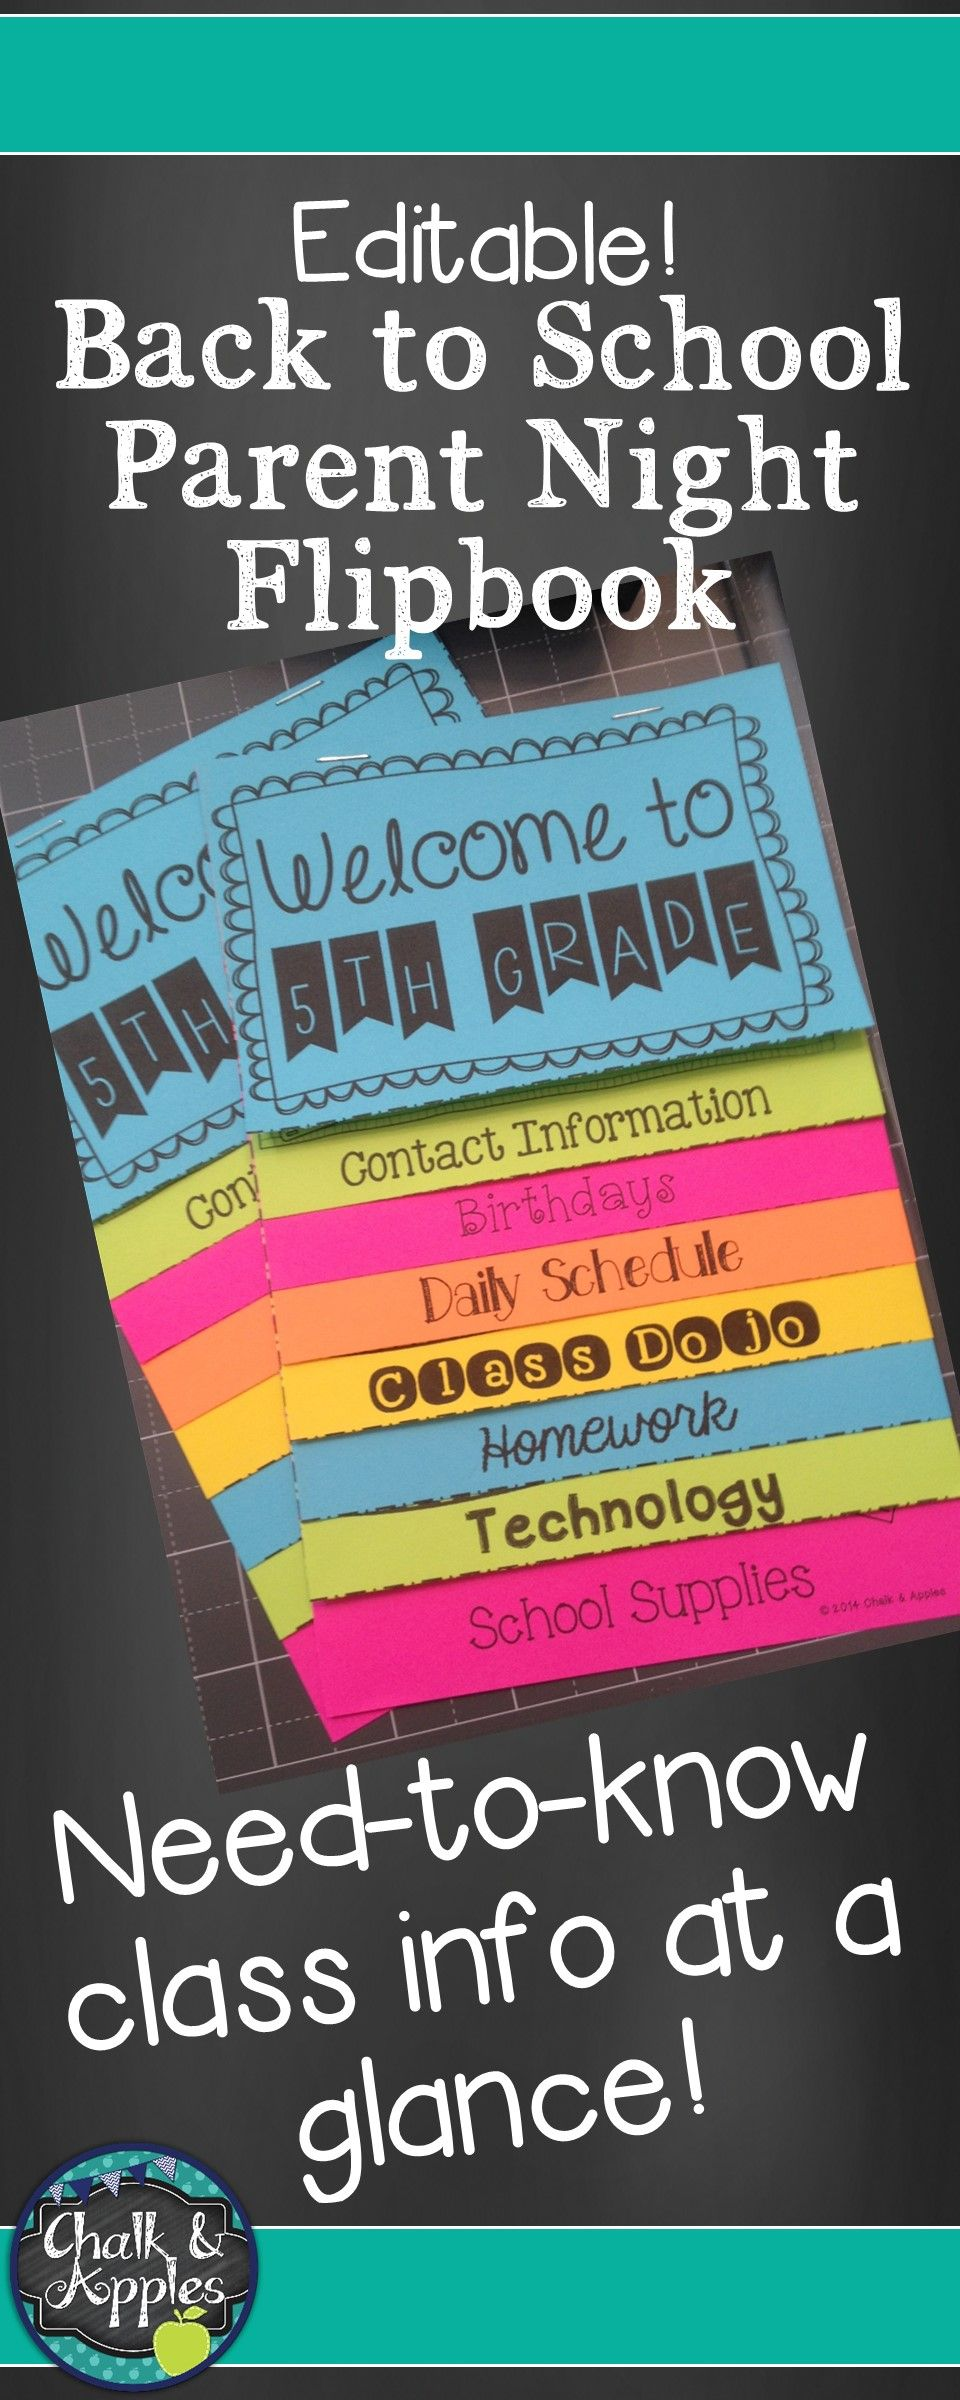 welcome back to school flipbook for meet the teacher night this editable flip book is an easy way to get important information to parents for meet the teacher or parent night at the beginning of the school year put